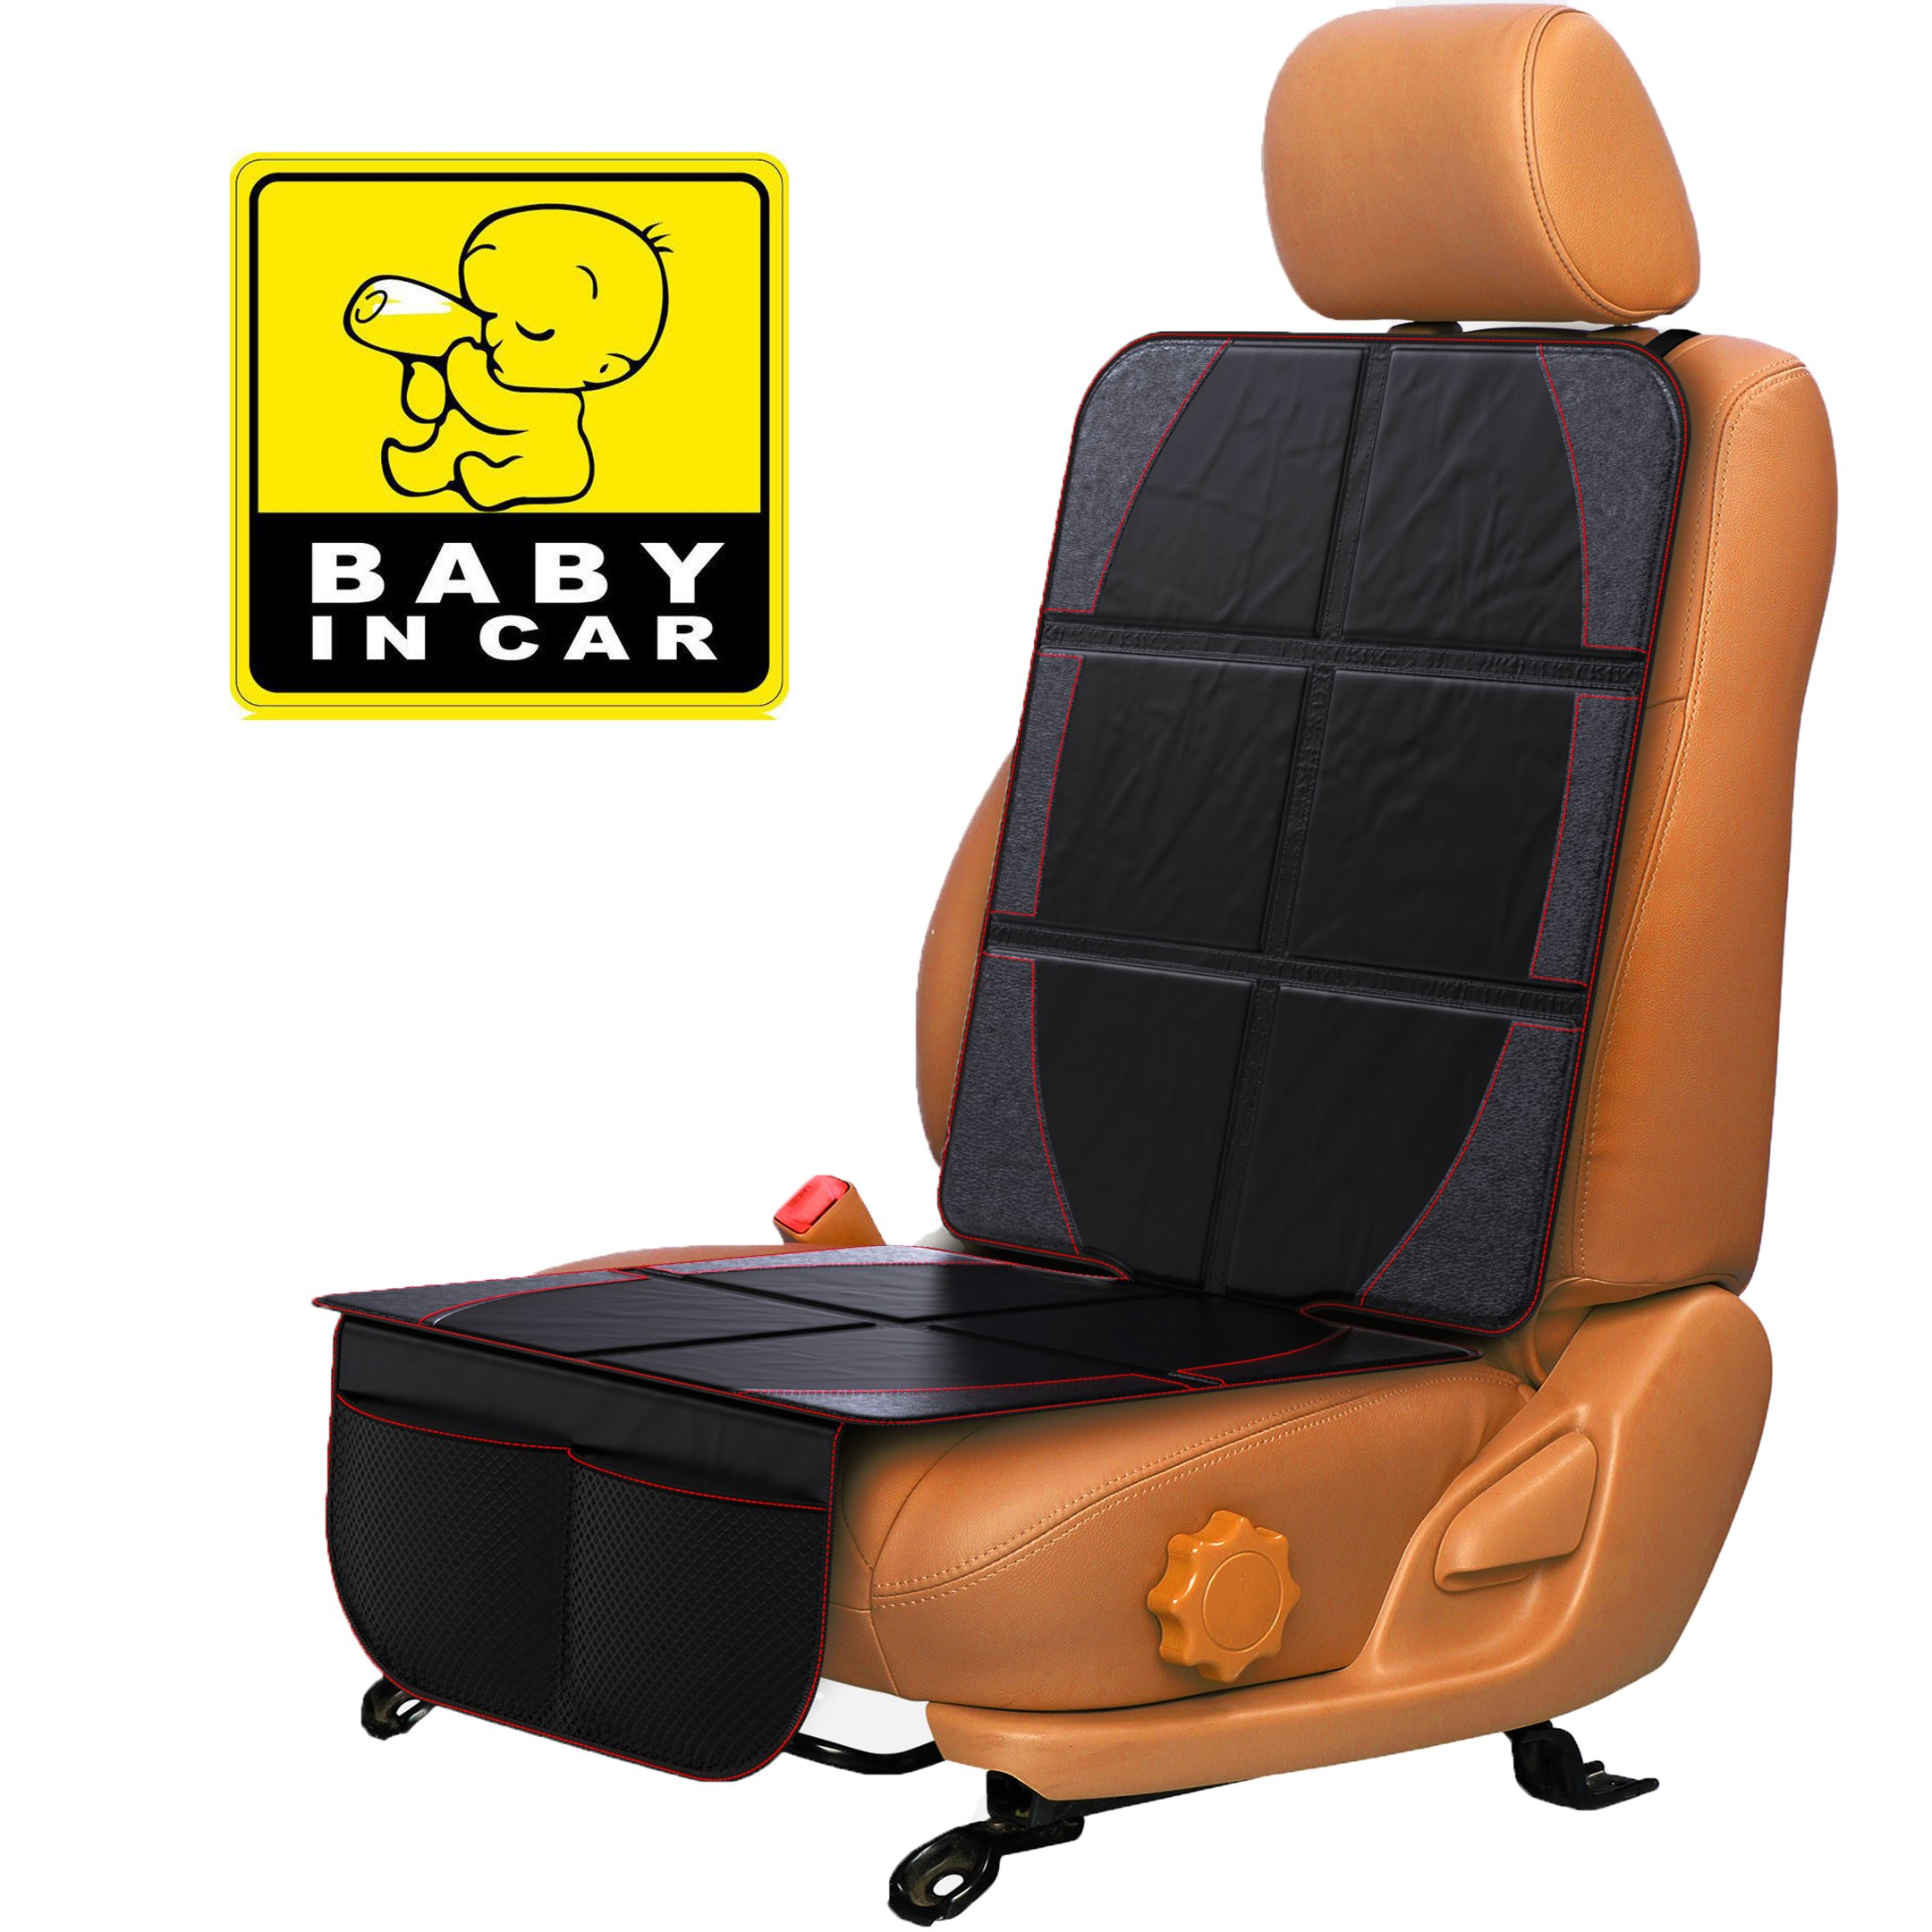 Car Seat Protector for Baby & Toddler by FORTEM | 100% Waterproof Thick & Durable Quality Backseat Cover | Protection Against Damage to Leather & Cloth Seats | Bonus Baby On Board Sticker